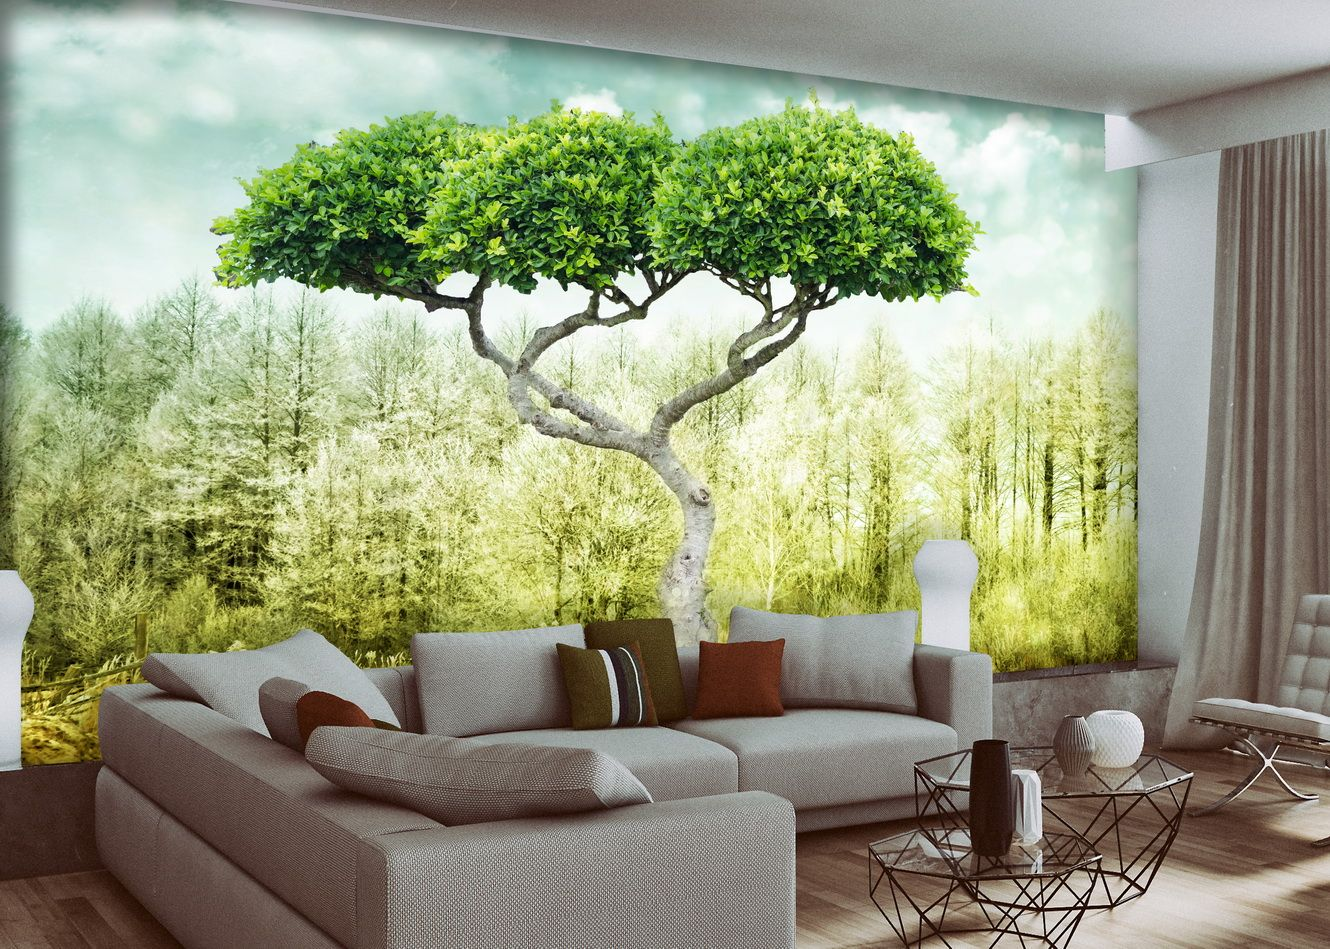 Wall Mural Window Mural Self Adhesive Vinyl Peel And Stick